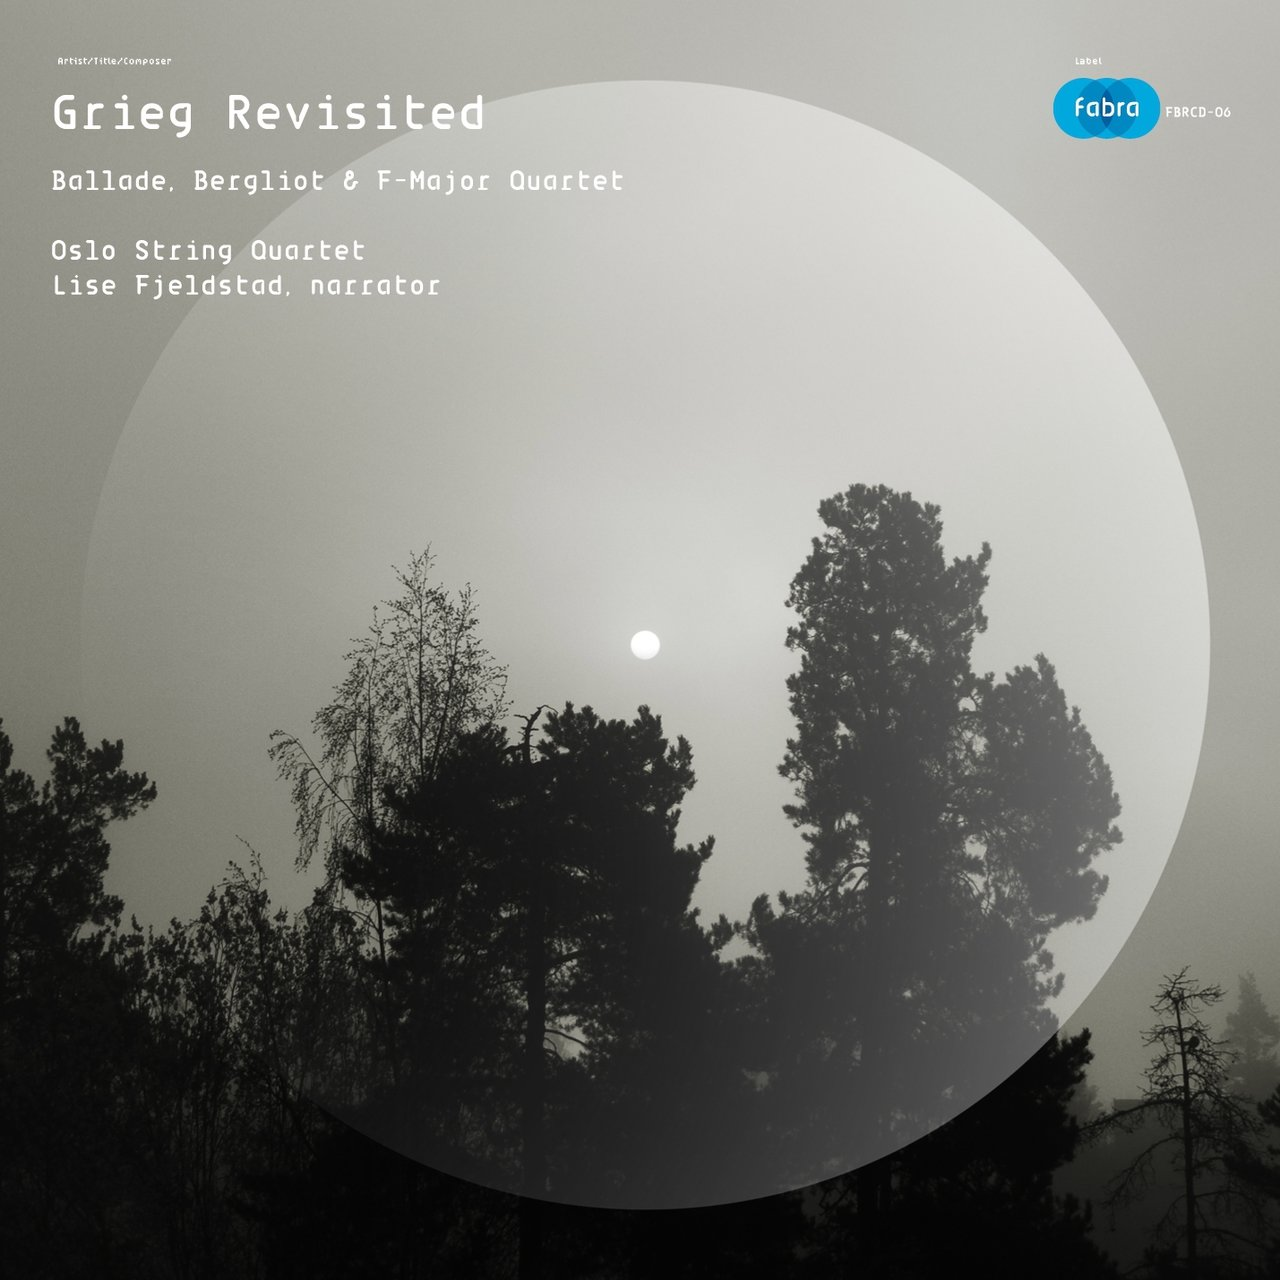 Grieg Revisited